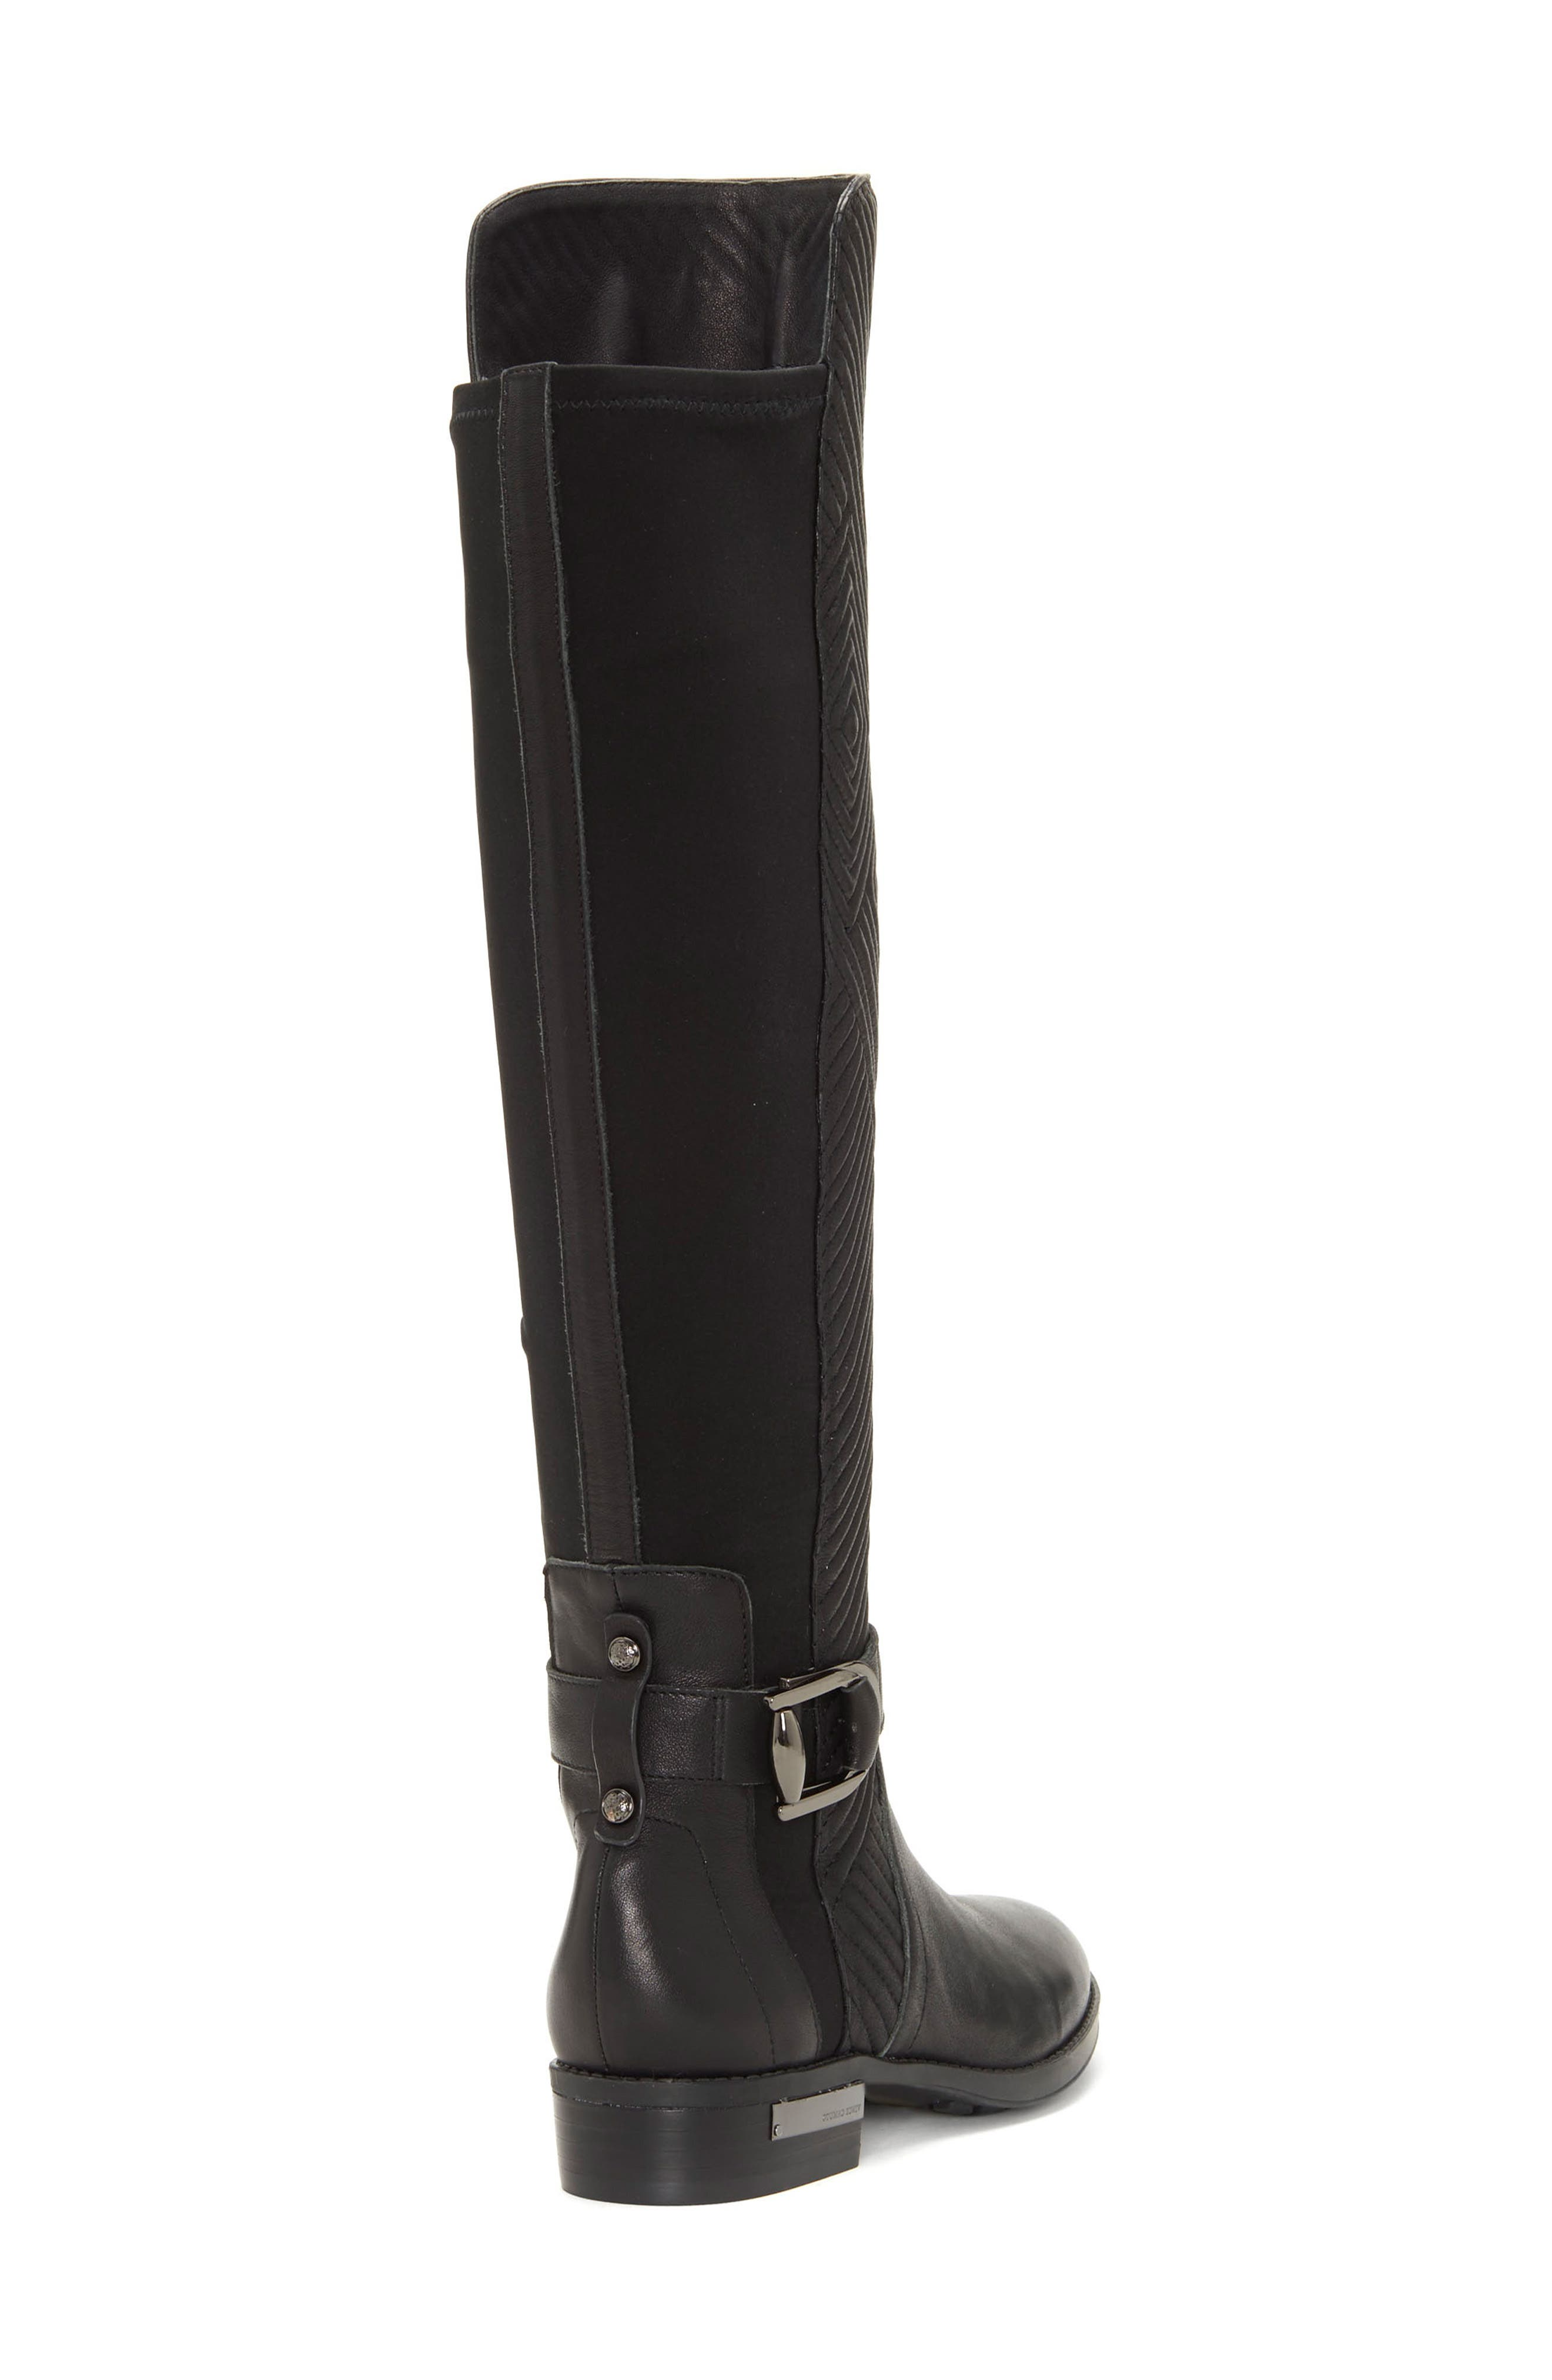 Pordalia Over-the-Knee Boot,                             Alternate thumbnail 9, color,                             BLACK LEATHER